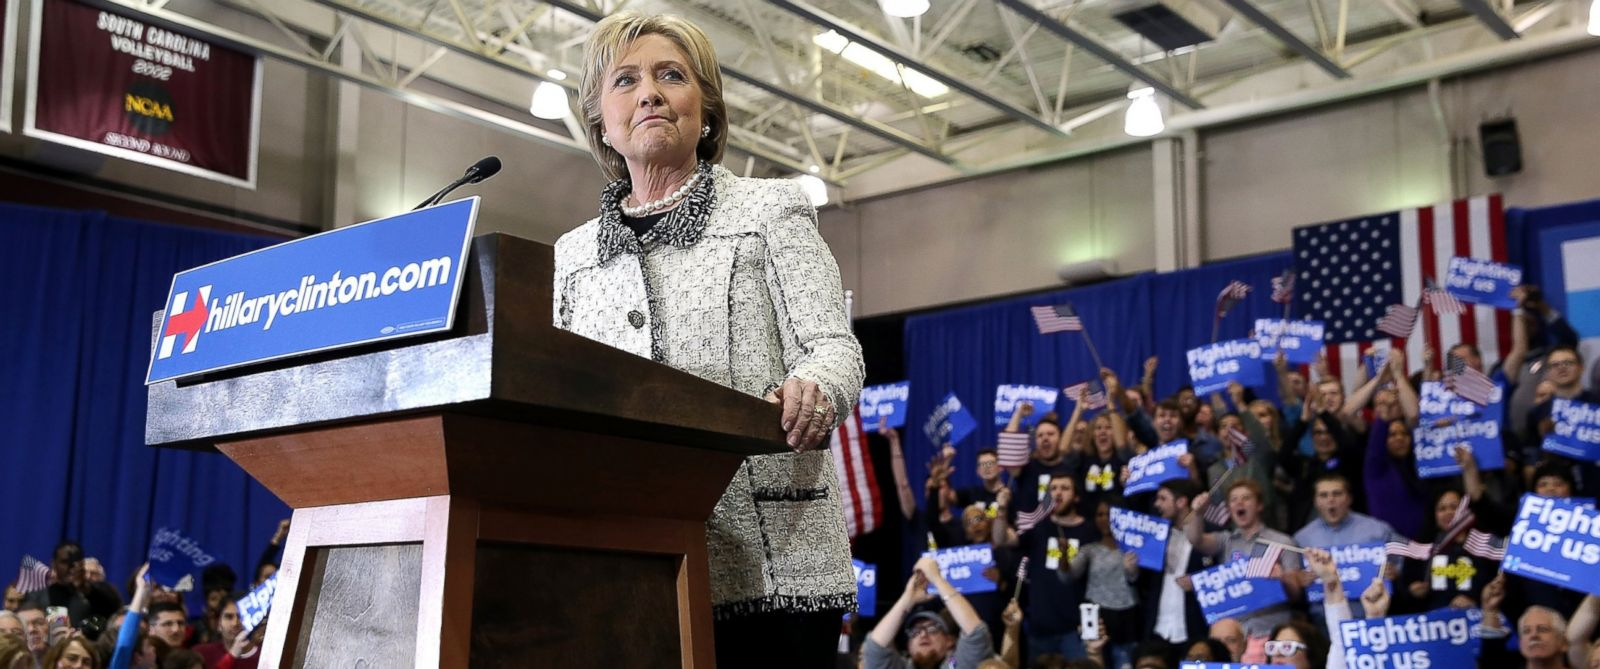 PHOTO: Democratic presidential candidate Hillary Clinton speaks during her primary night gathering at the University of South Carolina on Feb. 27, 2016, in Columbia, South Carolina.